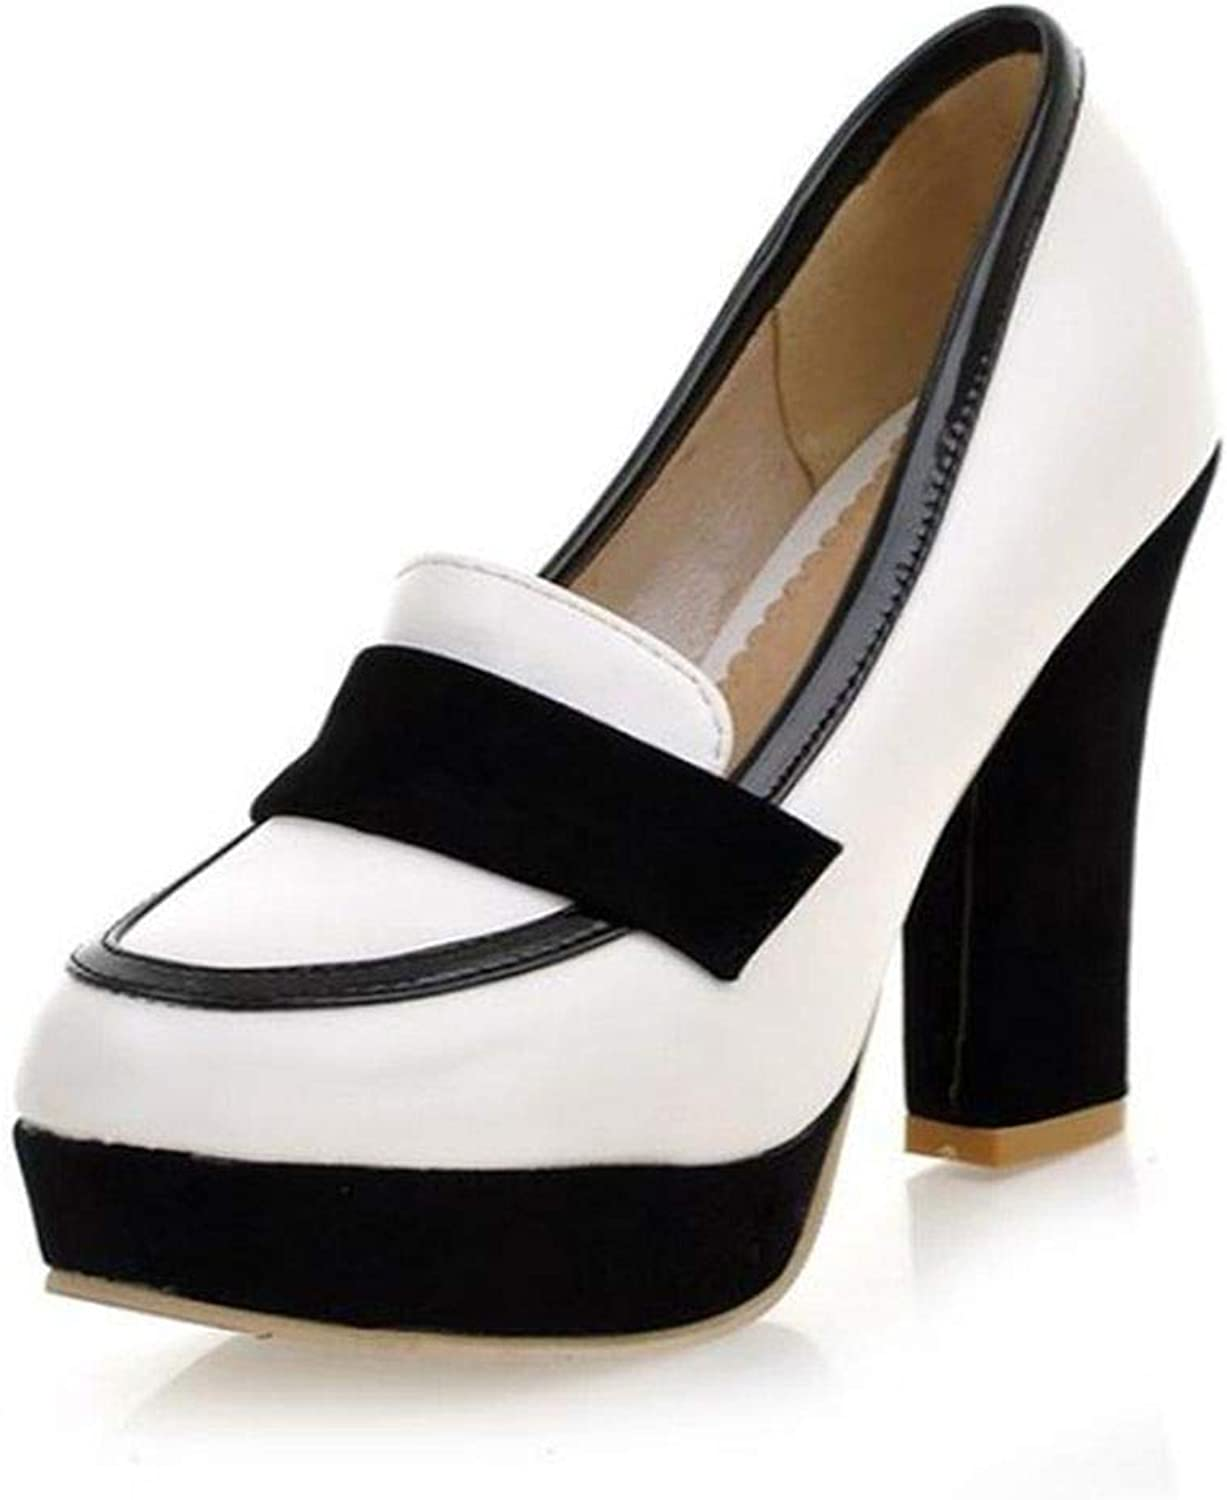 Ladies High Heel shoes Women Sexy Dress Footwear Fashion Lady Female Pumps P13025